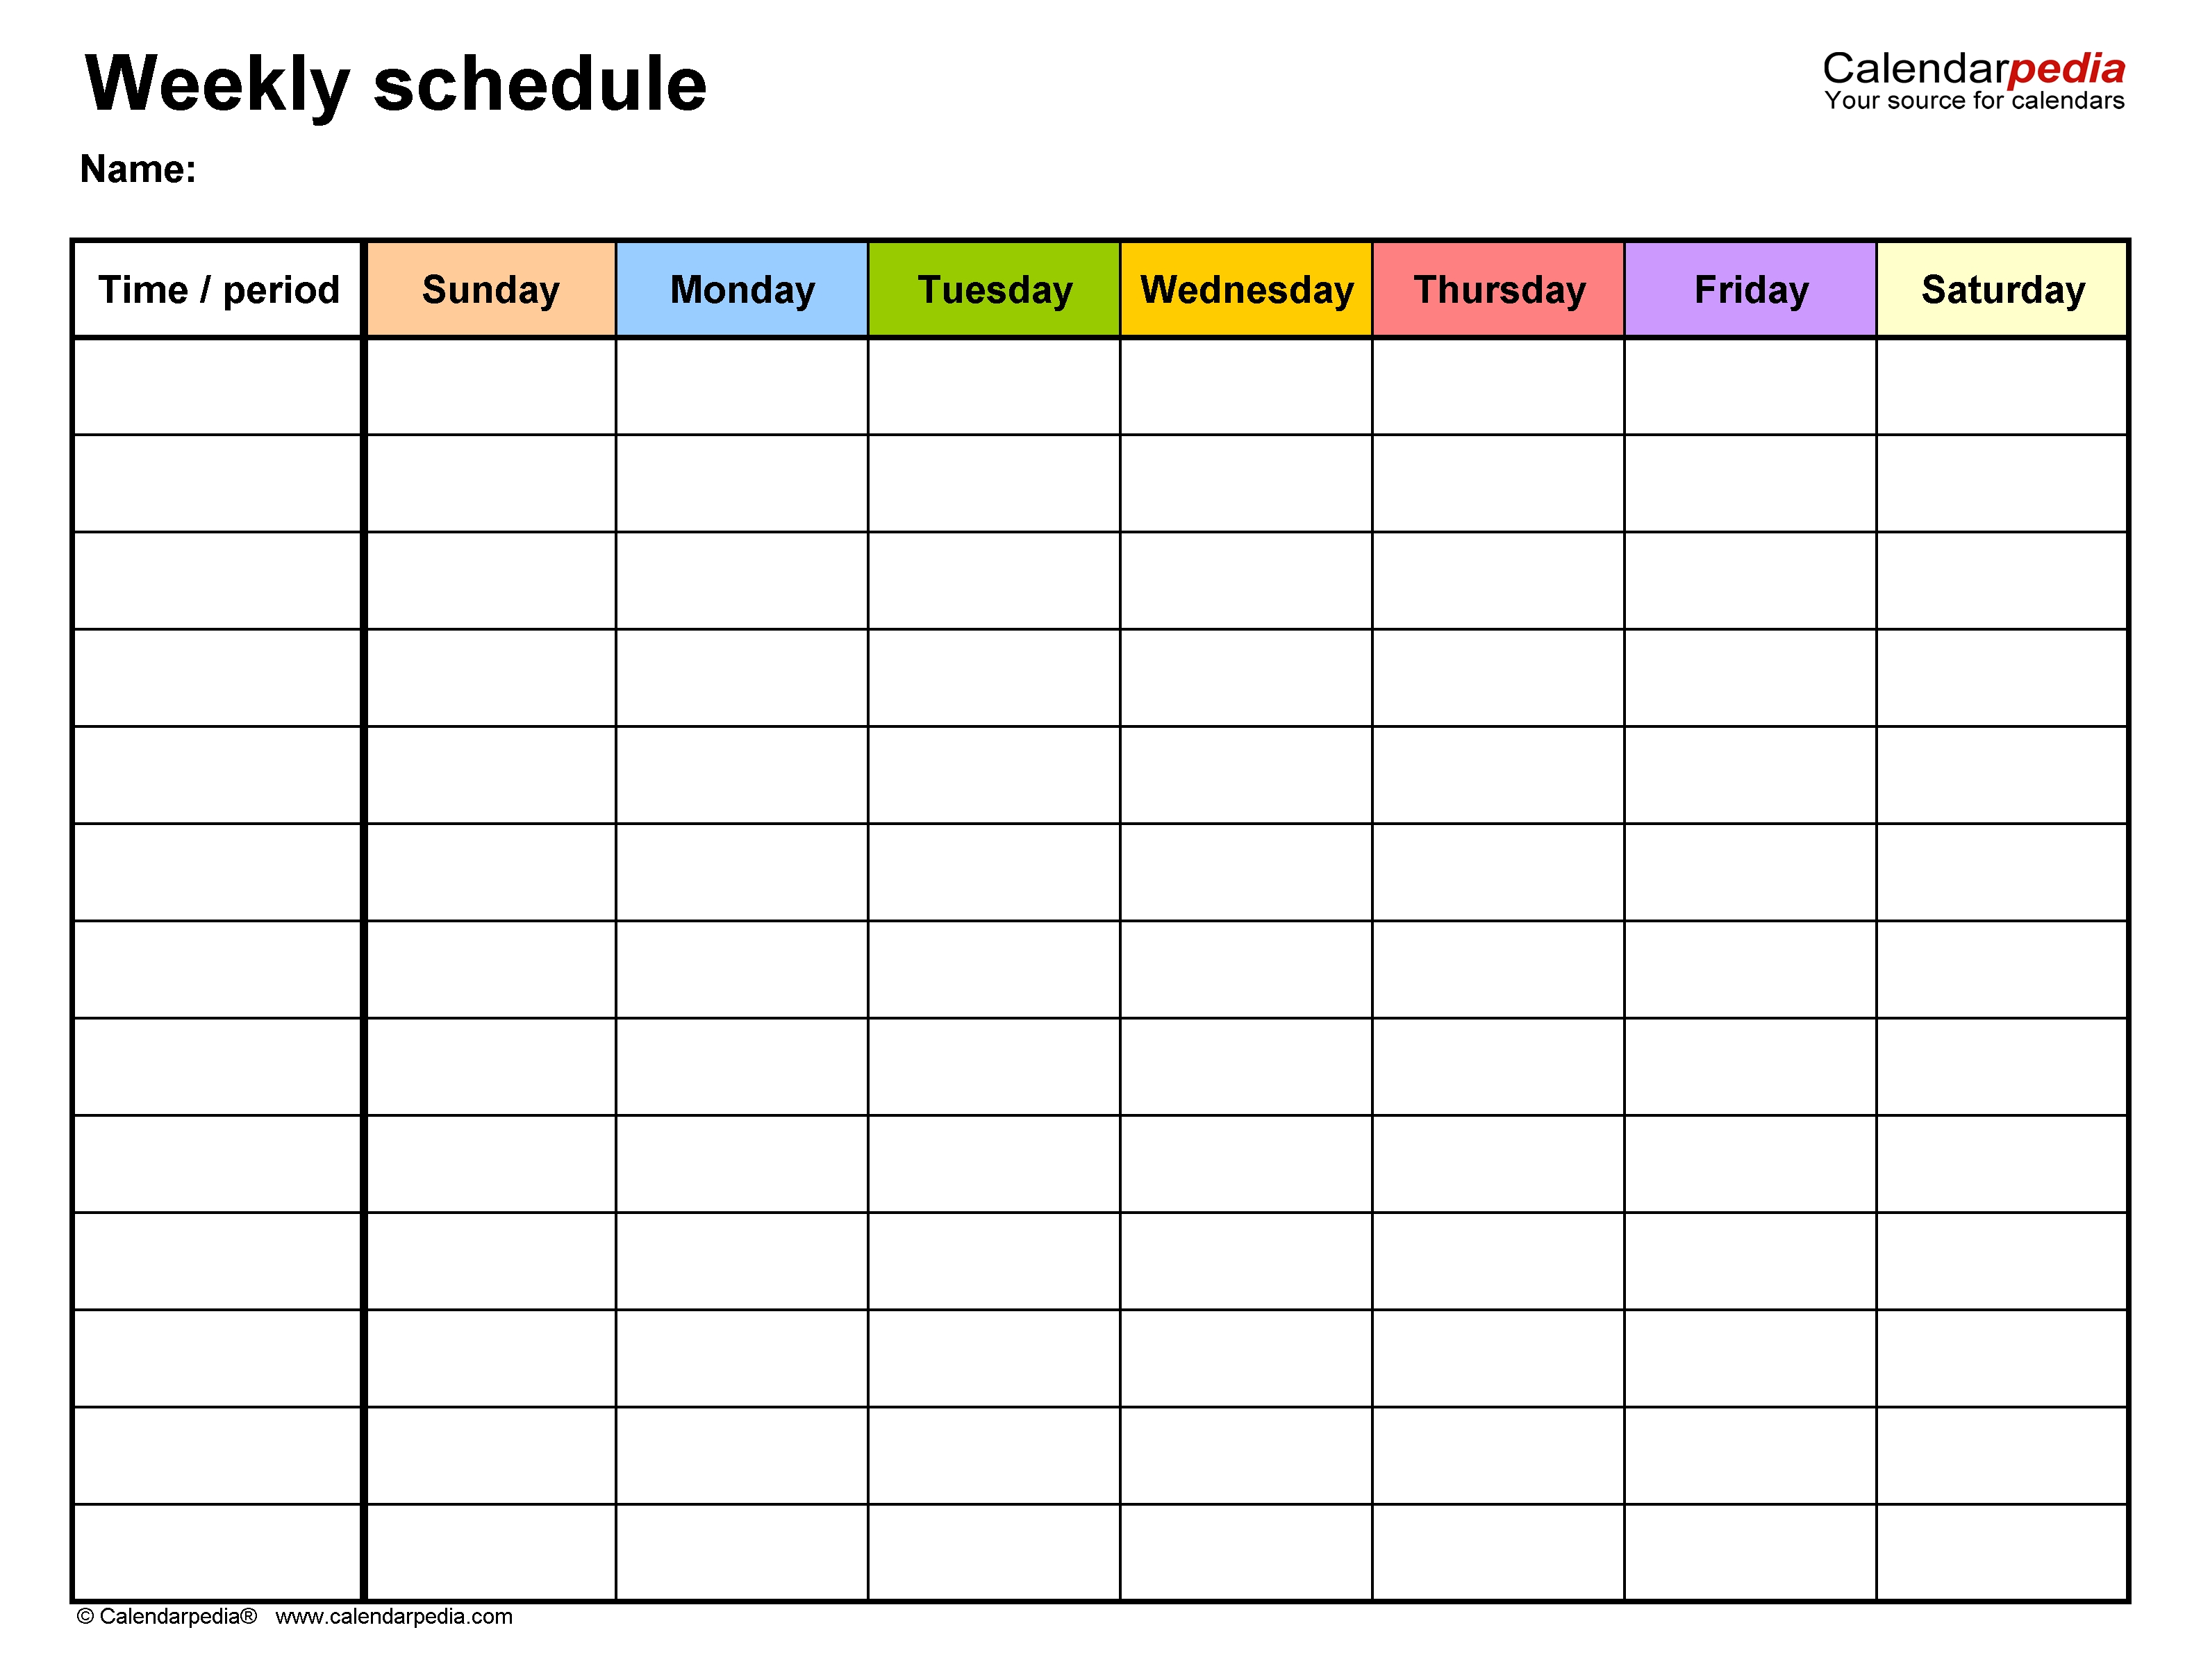 Free Weekly Schedules For Word - 18 Templates 7 Day Calendar Template Free